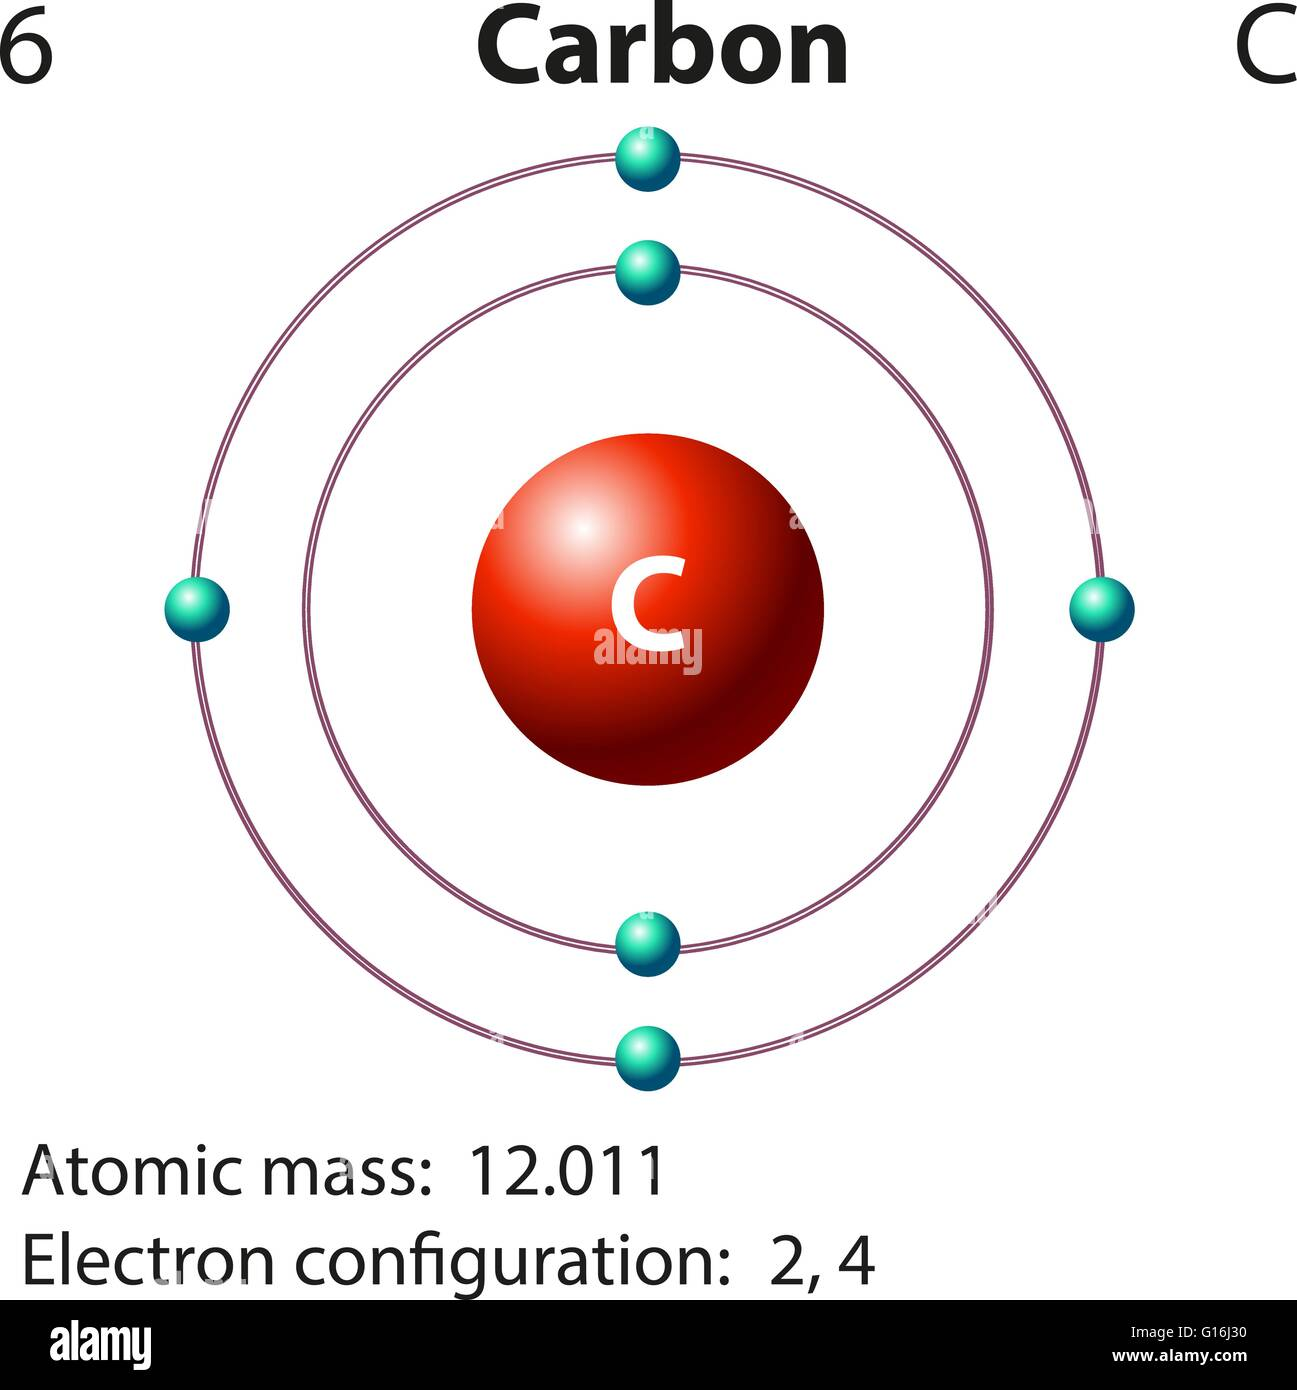 Carbon atom diagram stock photos carbon atom diagram stock images diagram representation of the element carbon illustration stock image ccuart Gallery